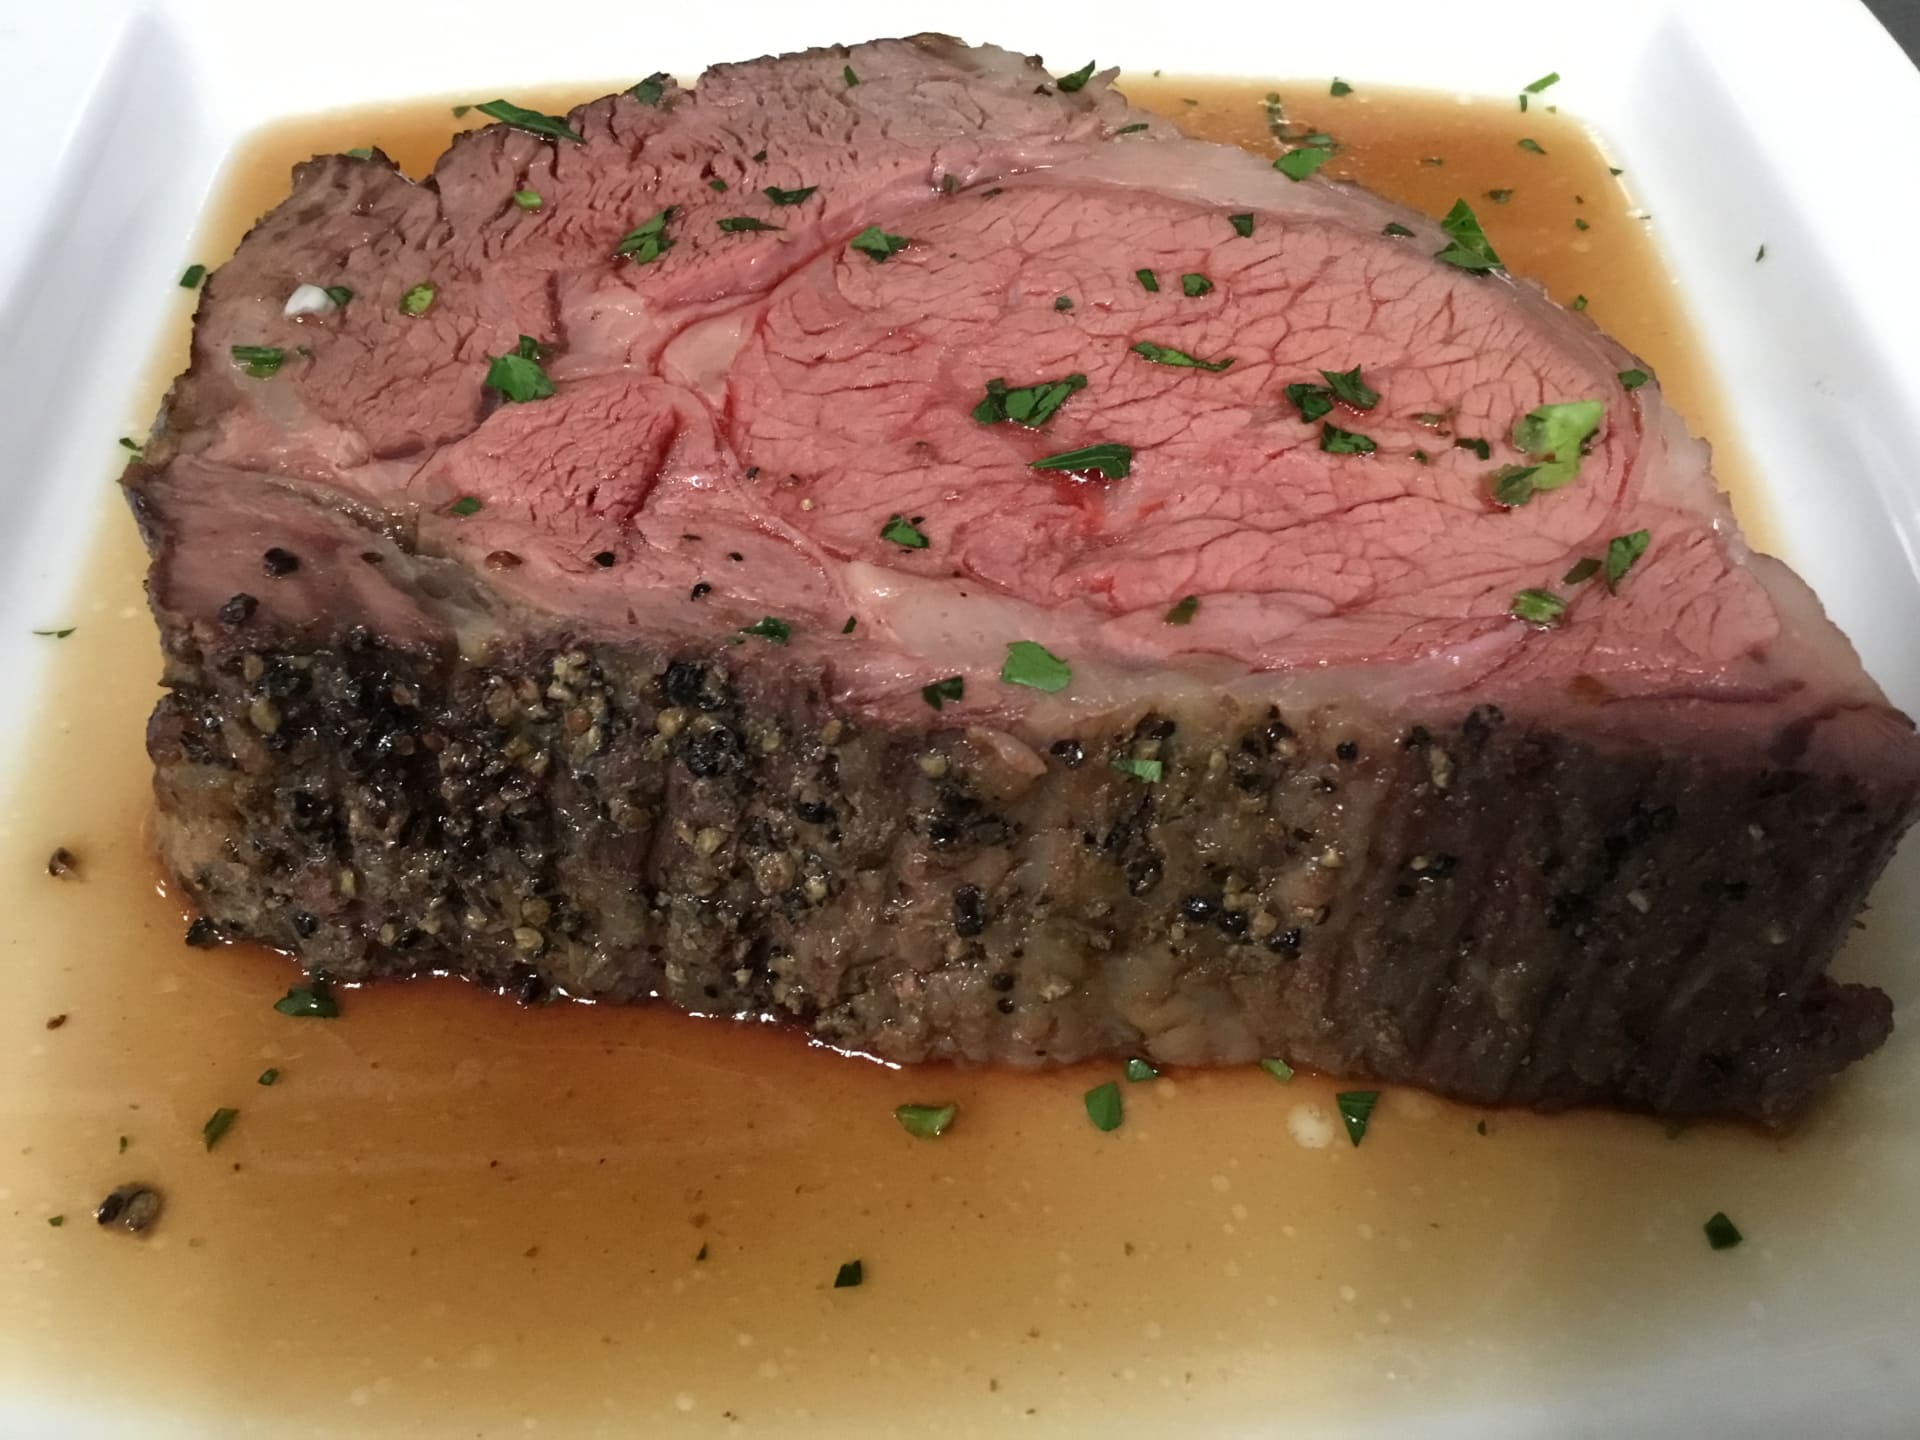 Roasted Prime Rib of Beef